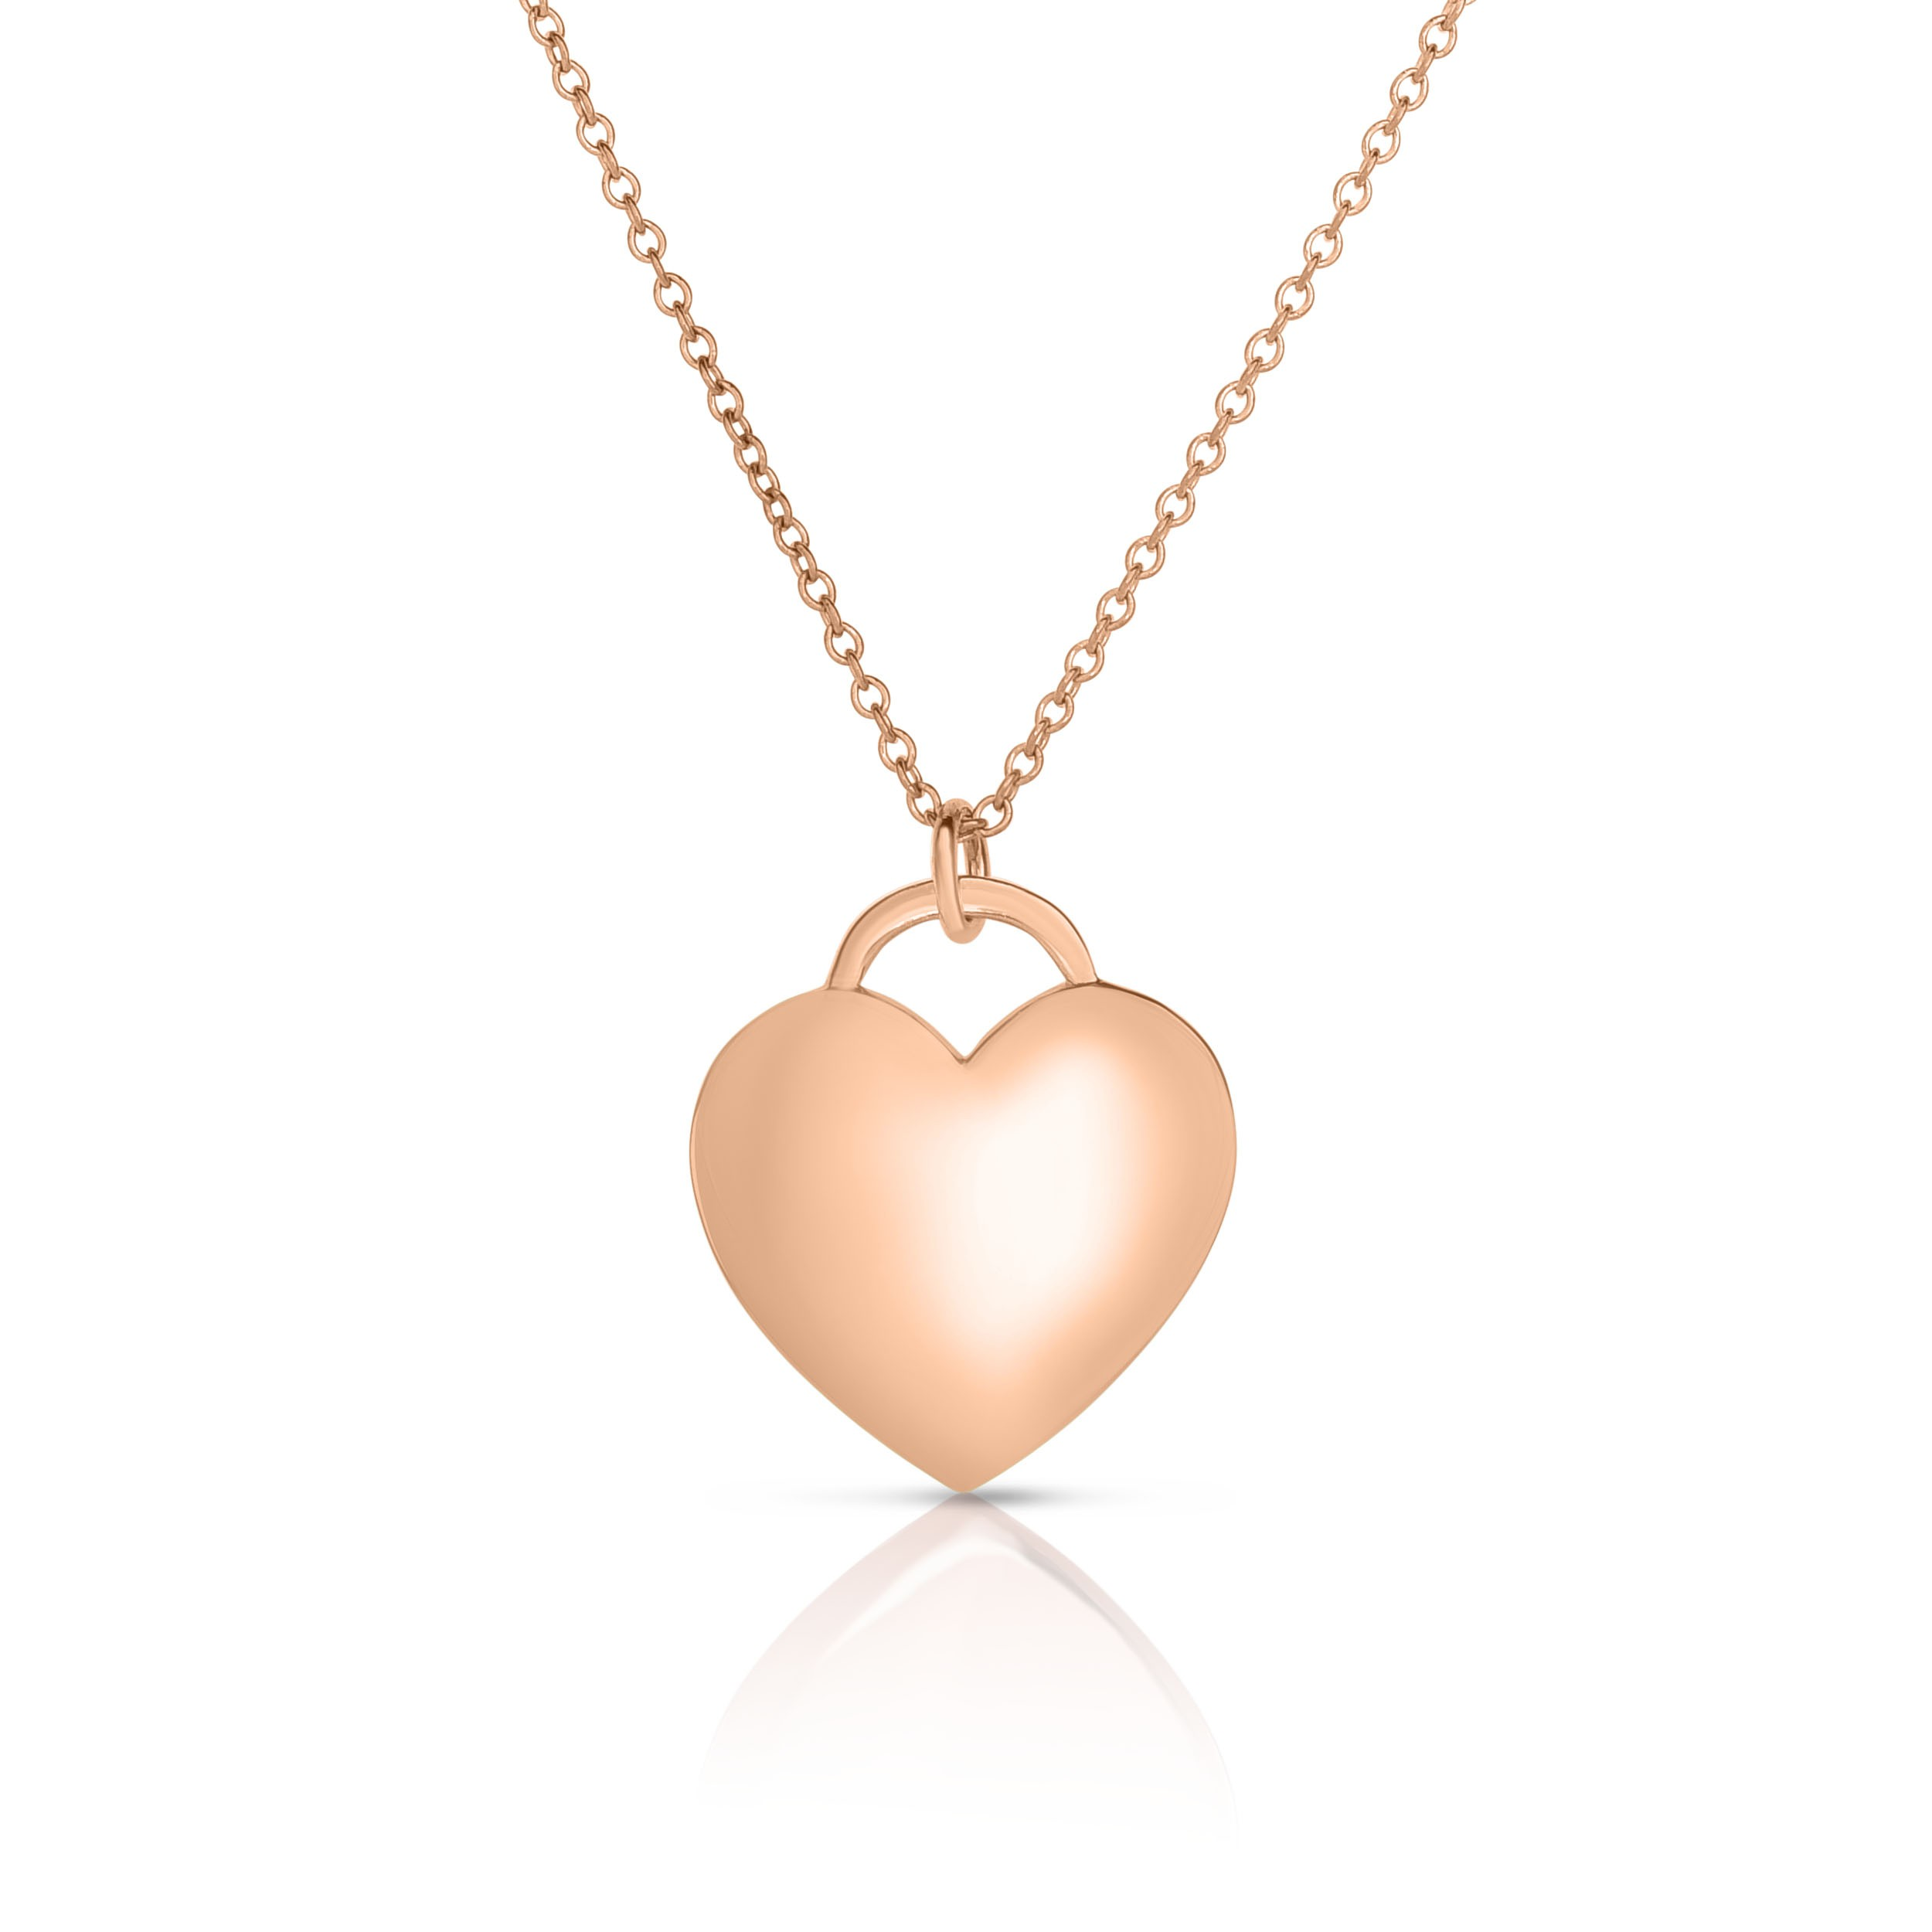 18K Rose Gold Love Bonds Pendant on AIDIA Extendable Link Chain